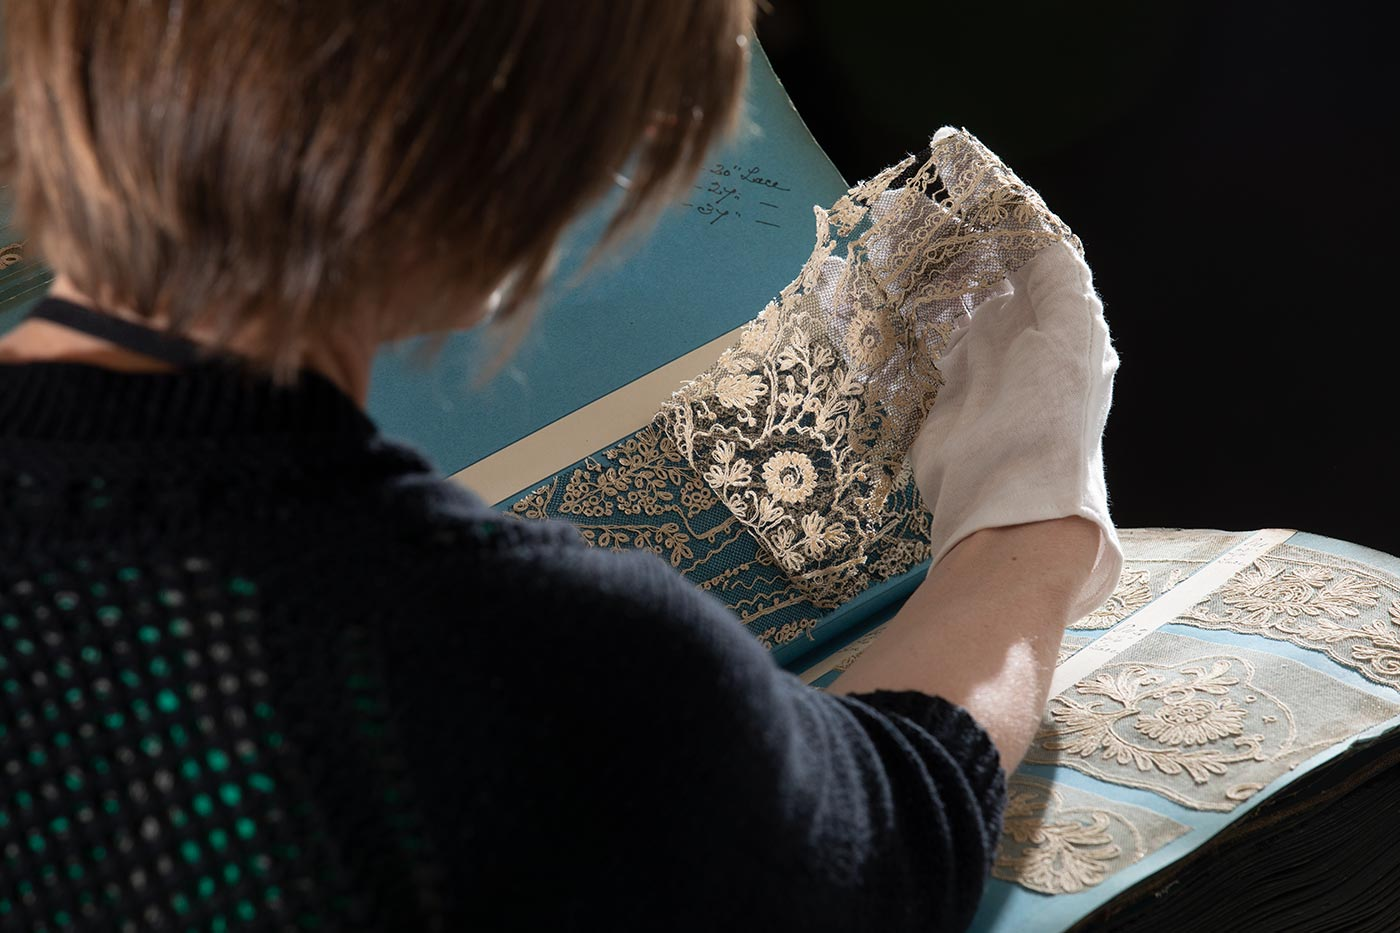 Colour photograph of a woman wearing conservation gloves and examining lace samples from a large sample book. - click to view larger image